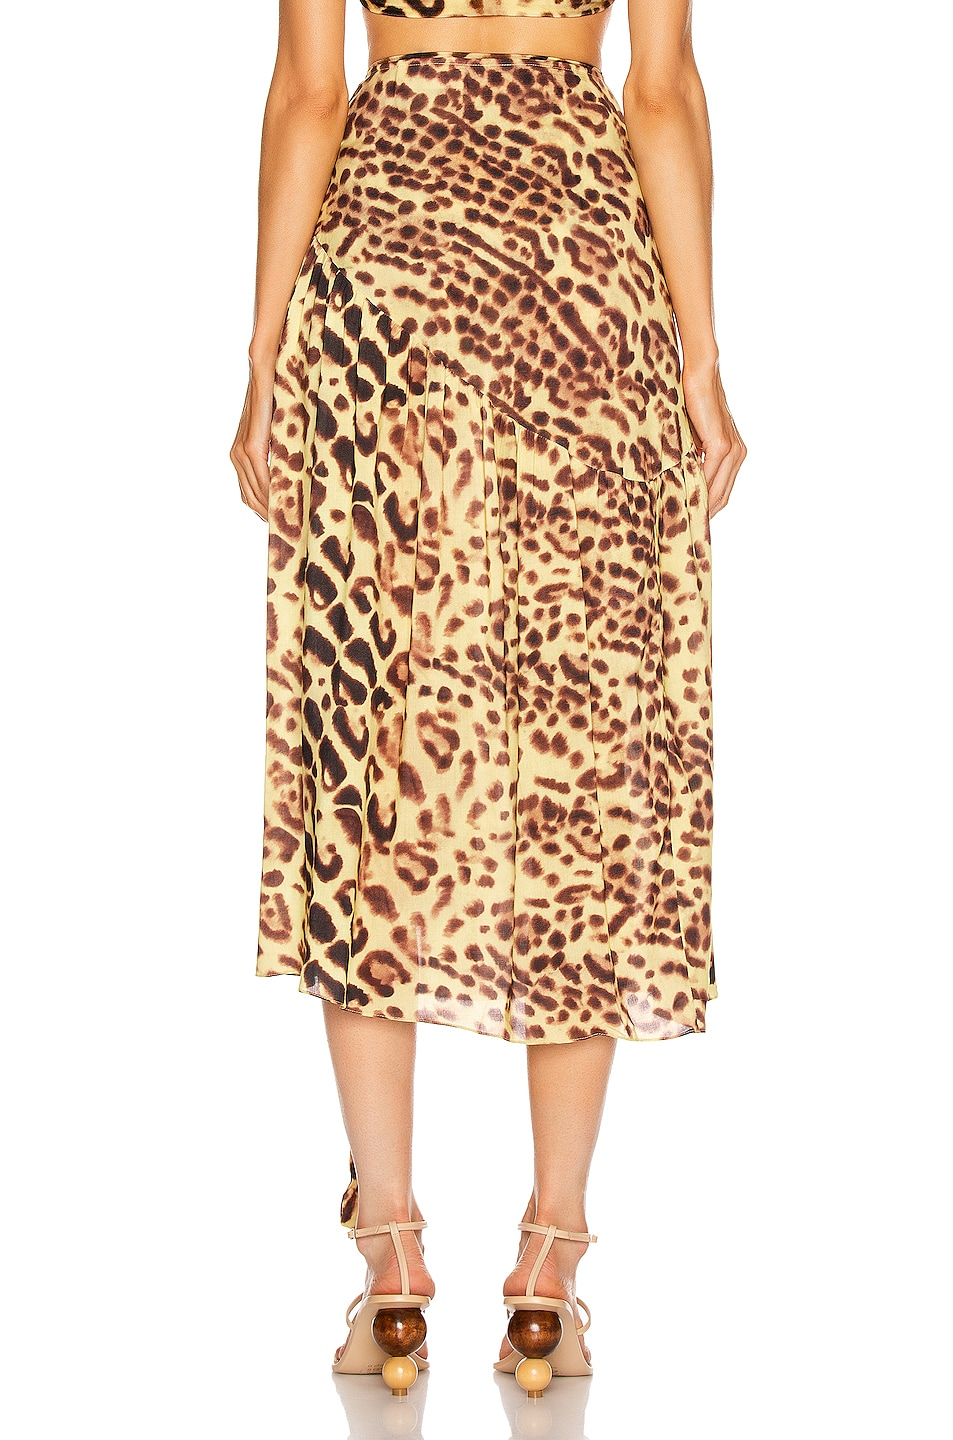 Image 4 of ADRIANA DEGREAS Leopard Pareo Midi Skirt in Brown